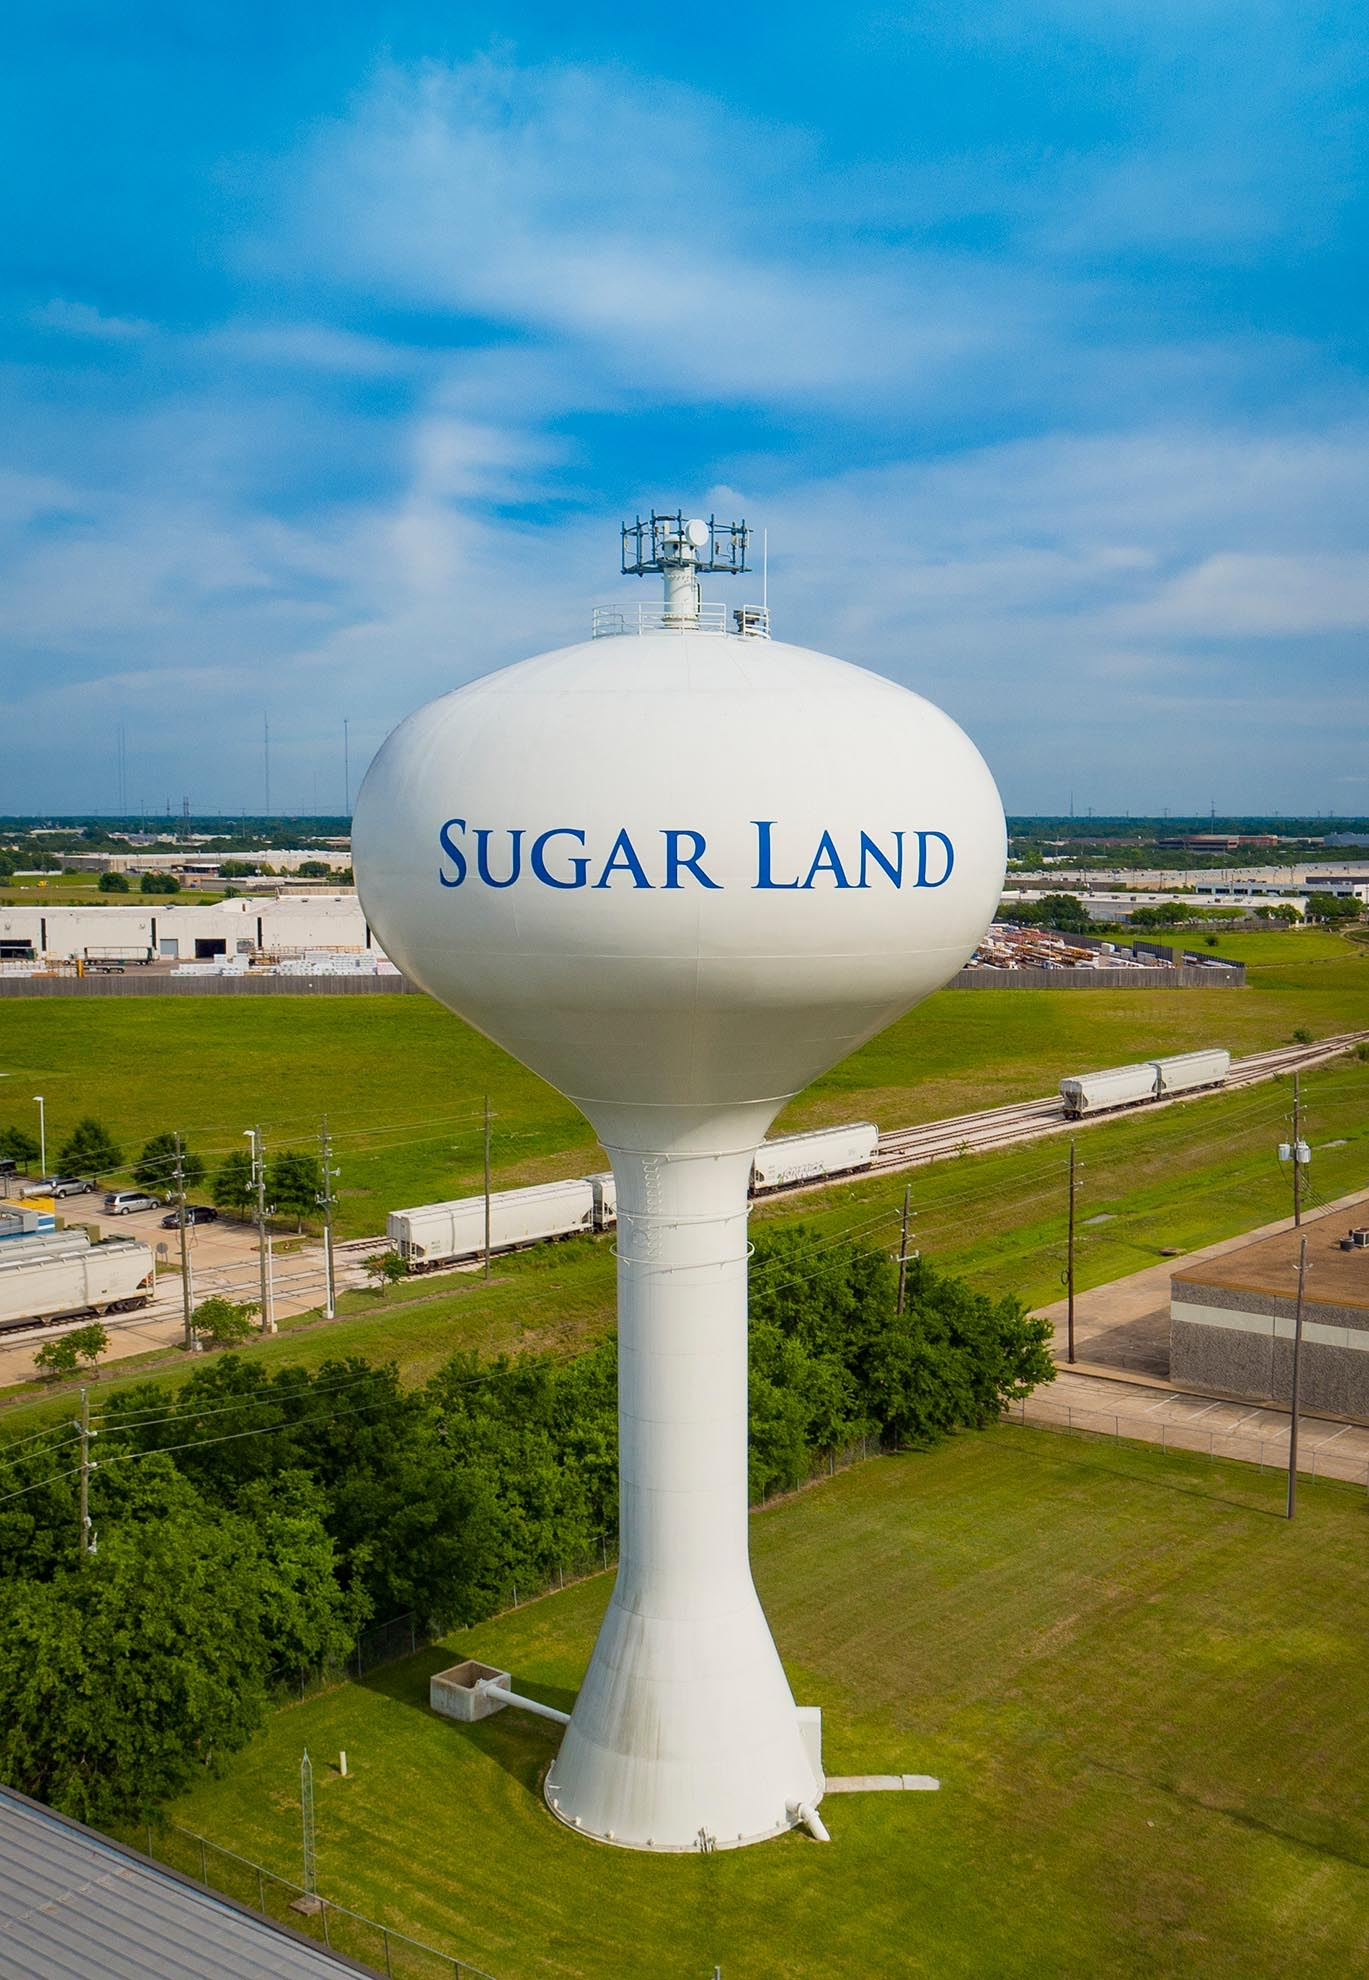 Drone Photograph of Sugar Land Texas elevated water tower